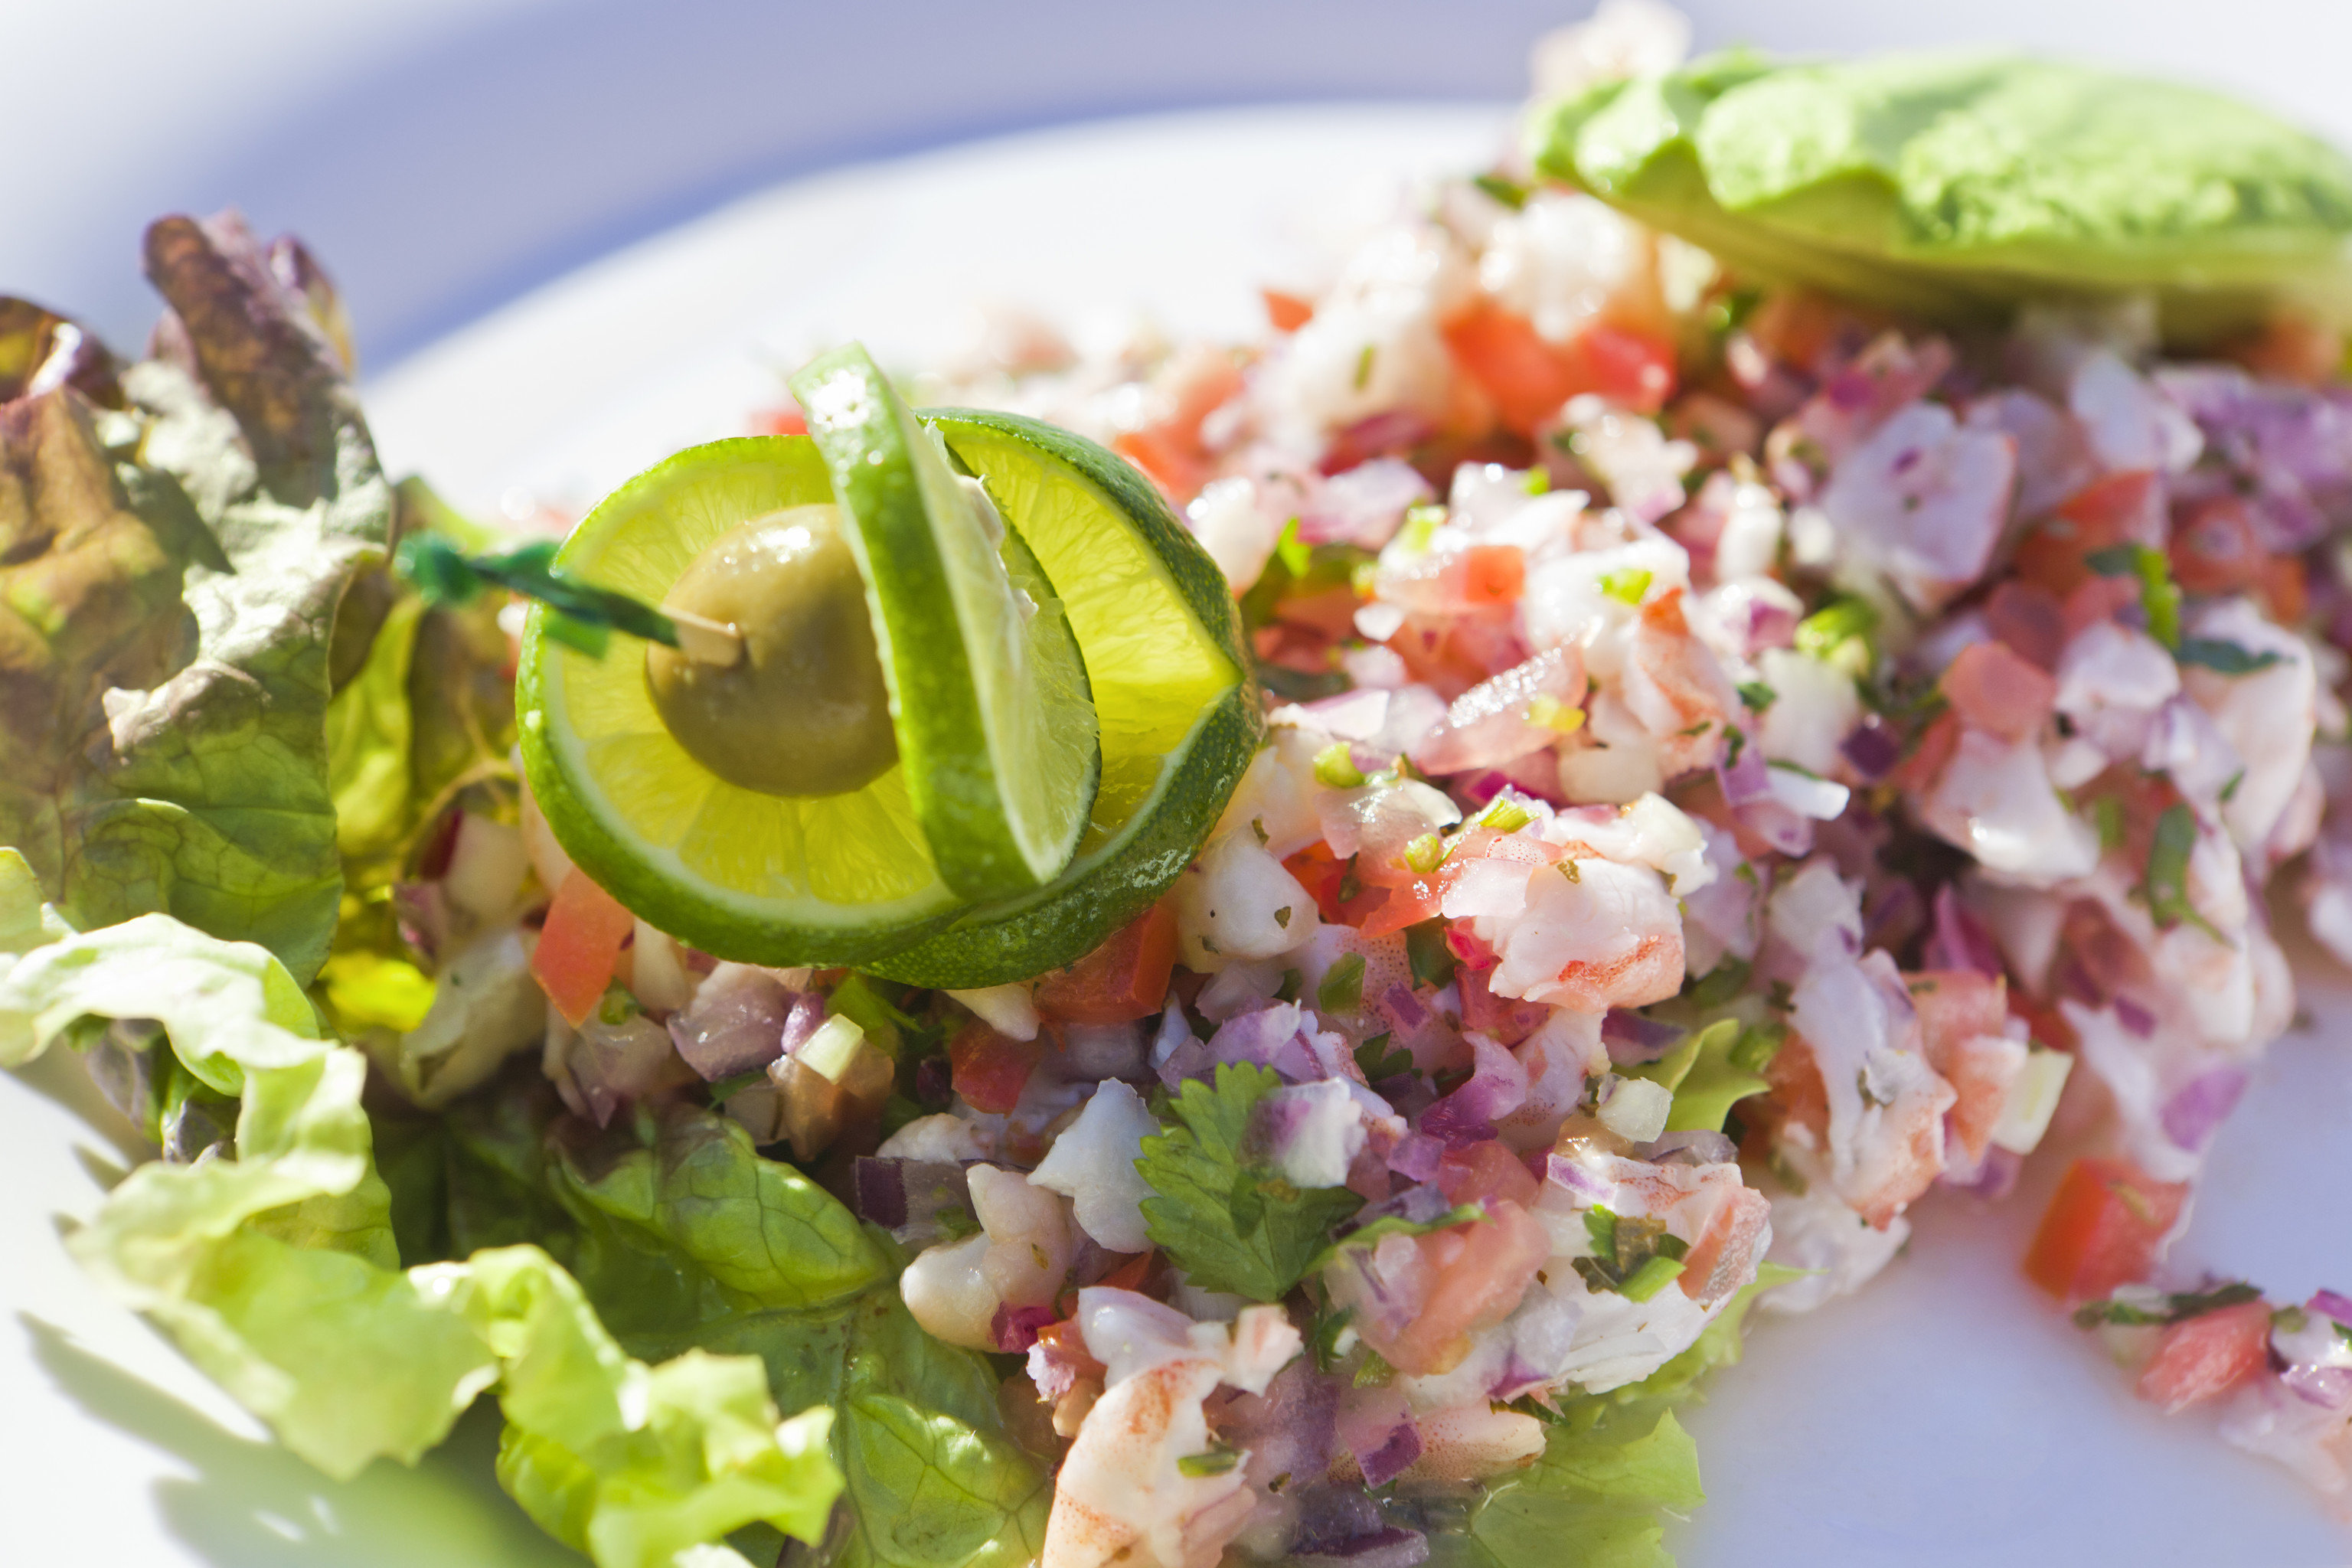 Beach food plate salad dish tuna salad cuisine produce vegetable ceviche greek salad tostada close fried rice toppings